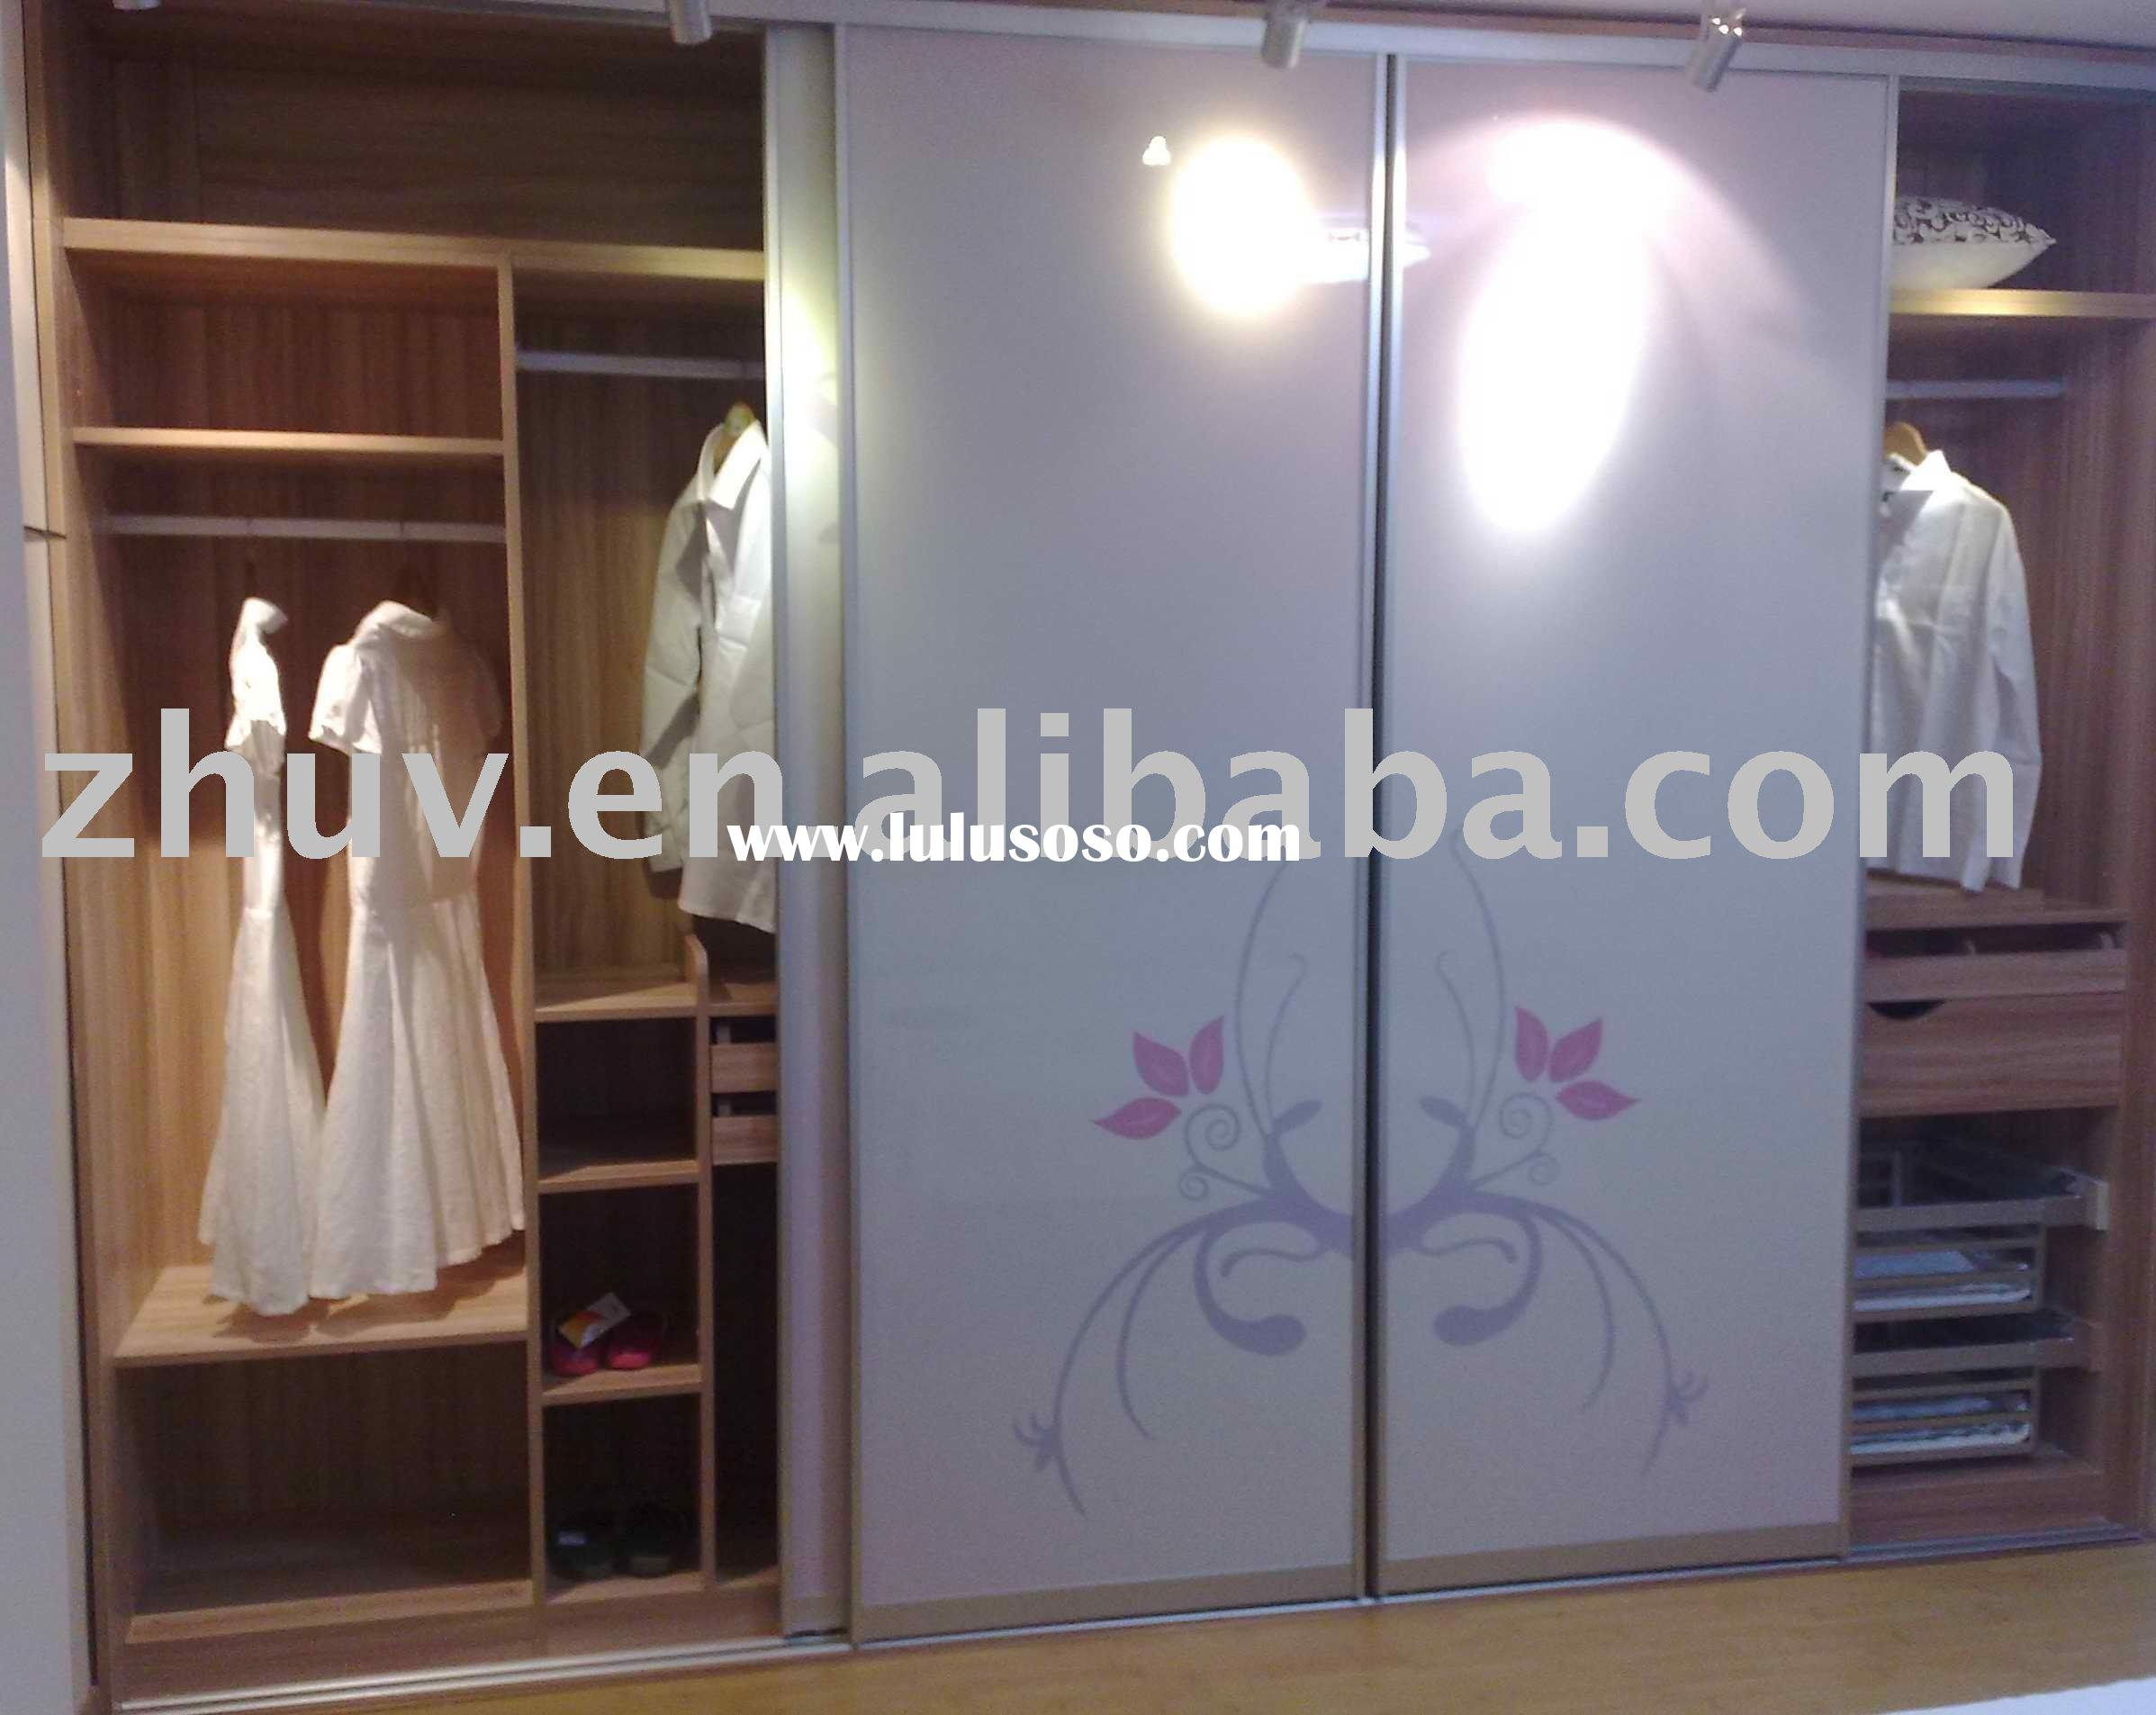 Sliding Mirror Closet Door Floor Track2395 X 1905